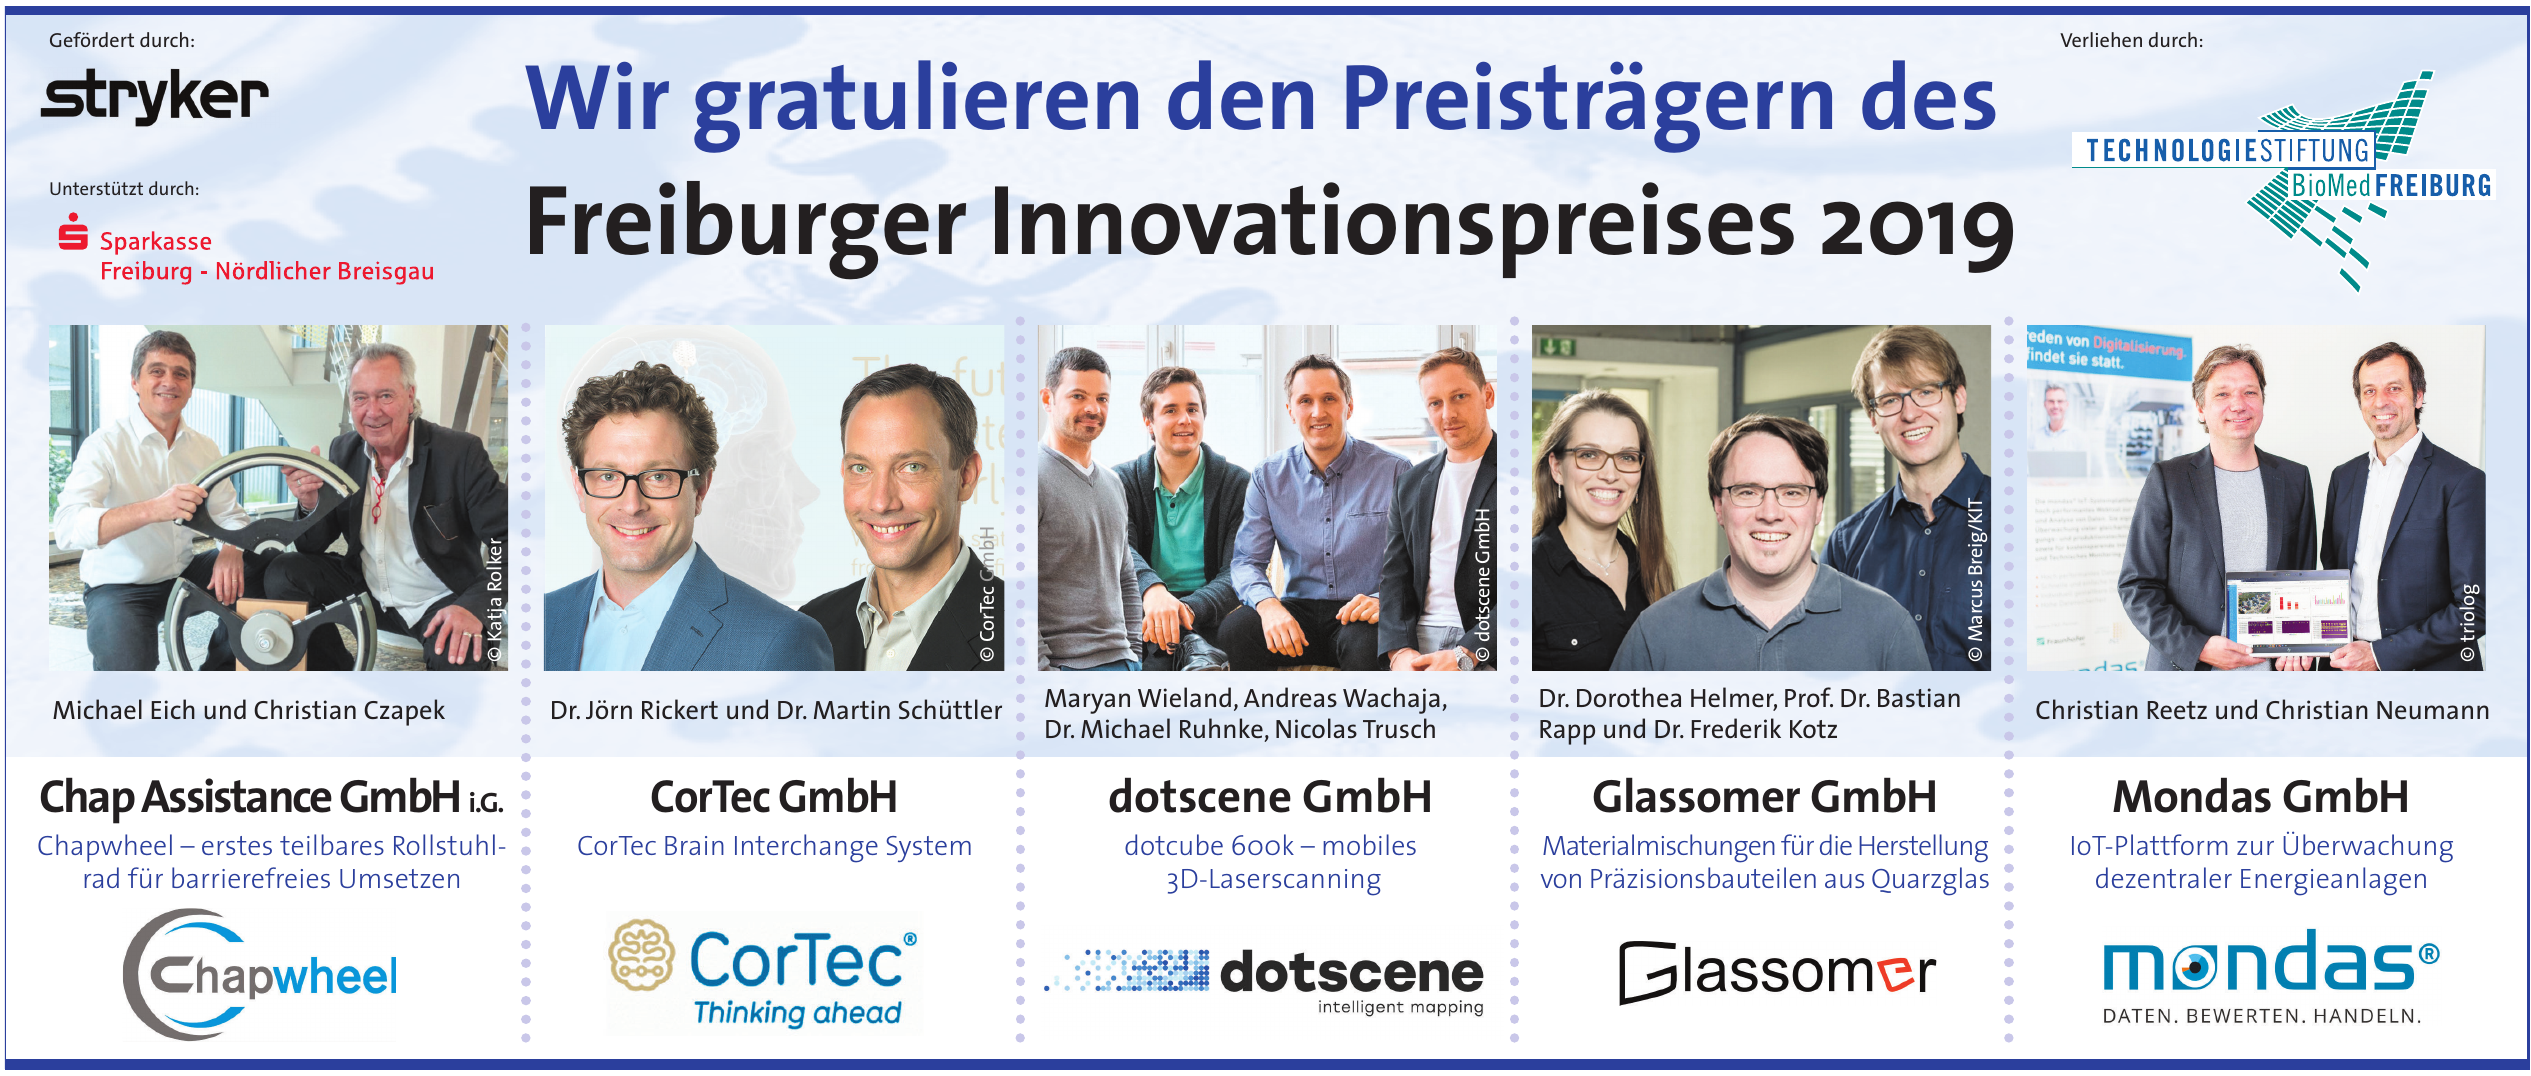 Freiburger Innovationspreis 2019